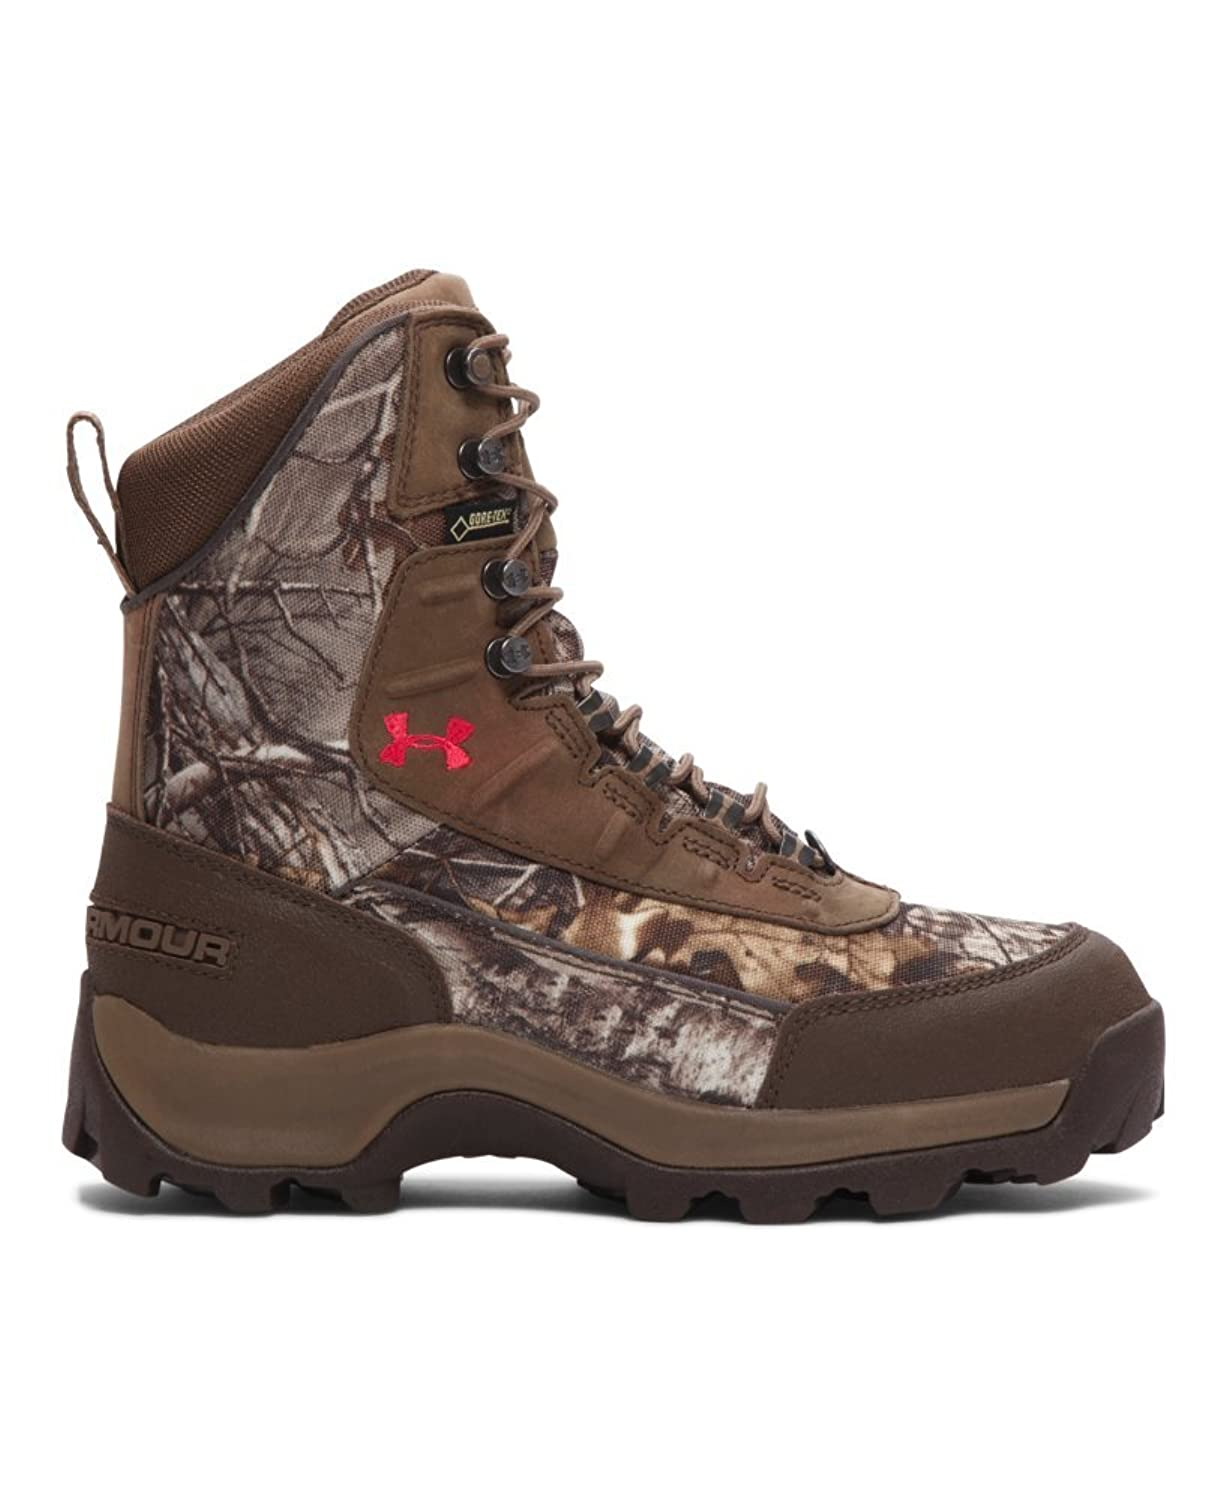 Under Armour Women's UA Brow Tine – 400g Hunting Boots